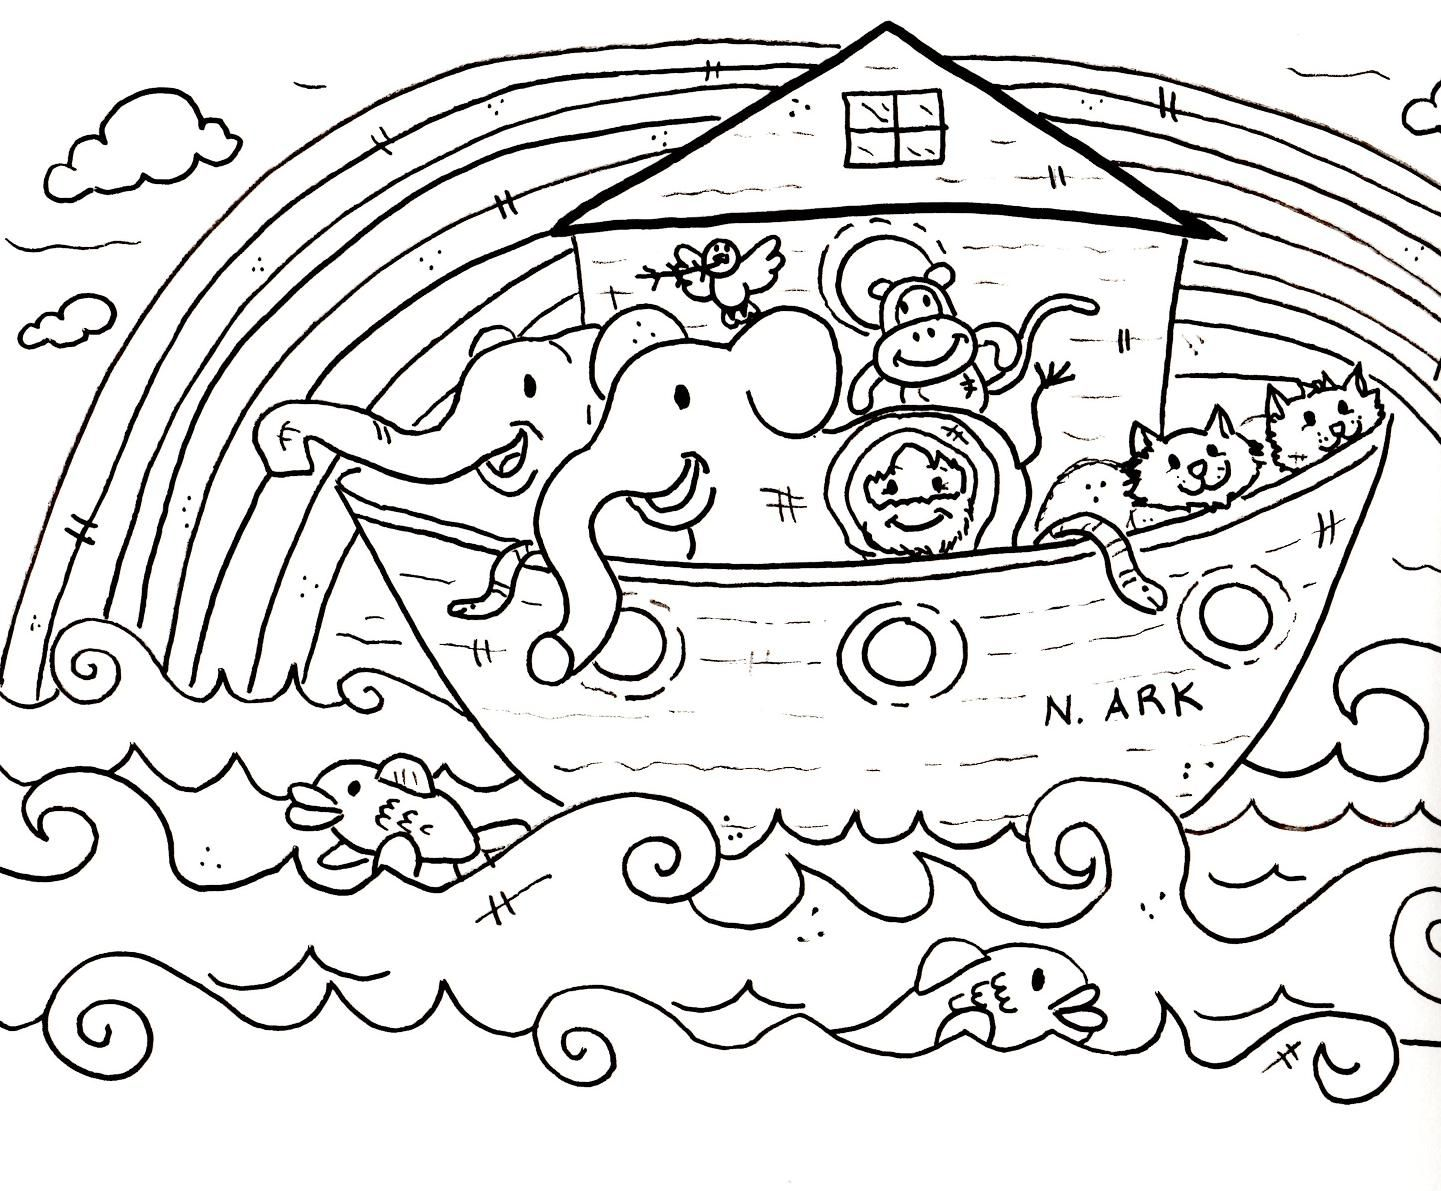 Printable coloring pages religious items - Children Coloring Pages For Church Sunday School Coloring Pages Coloring Pages